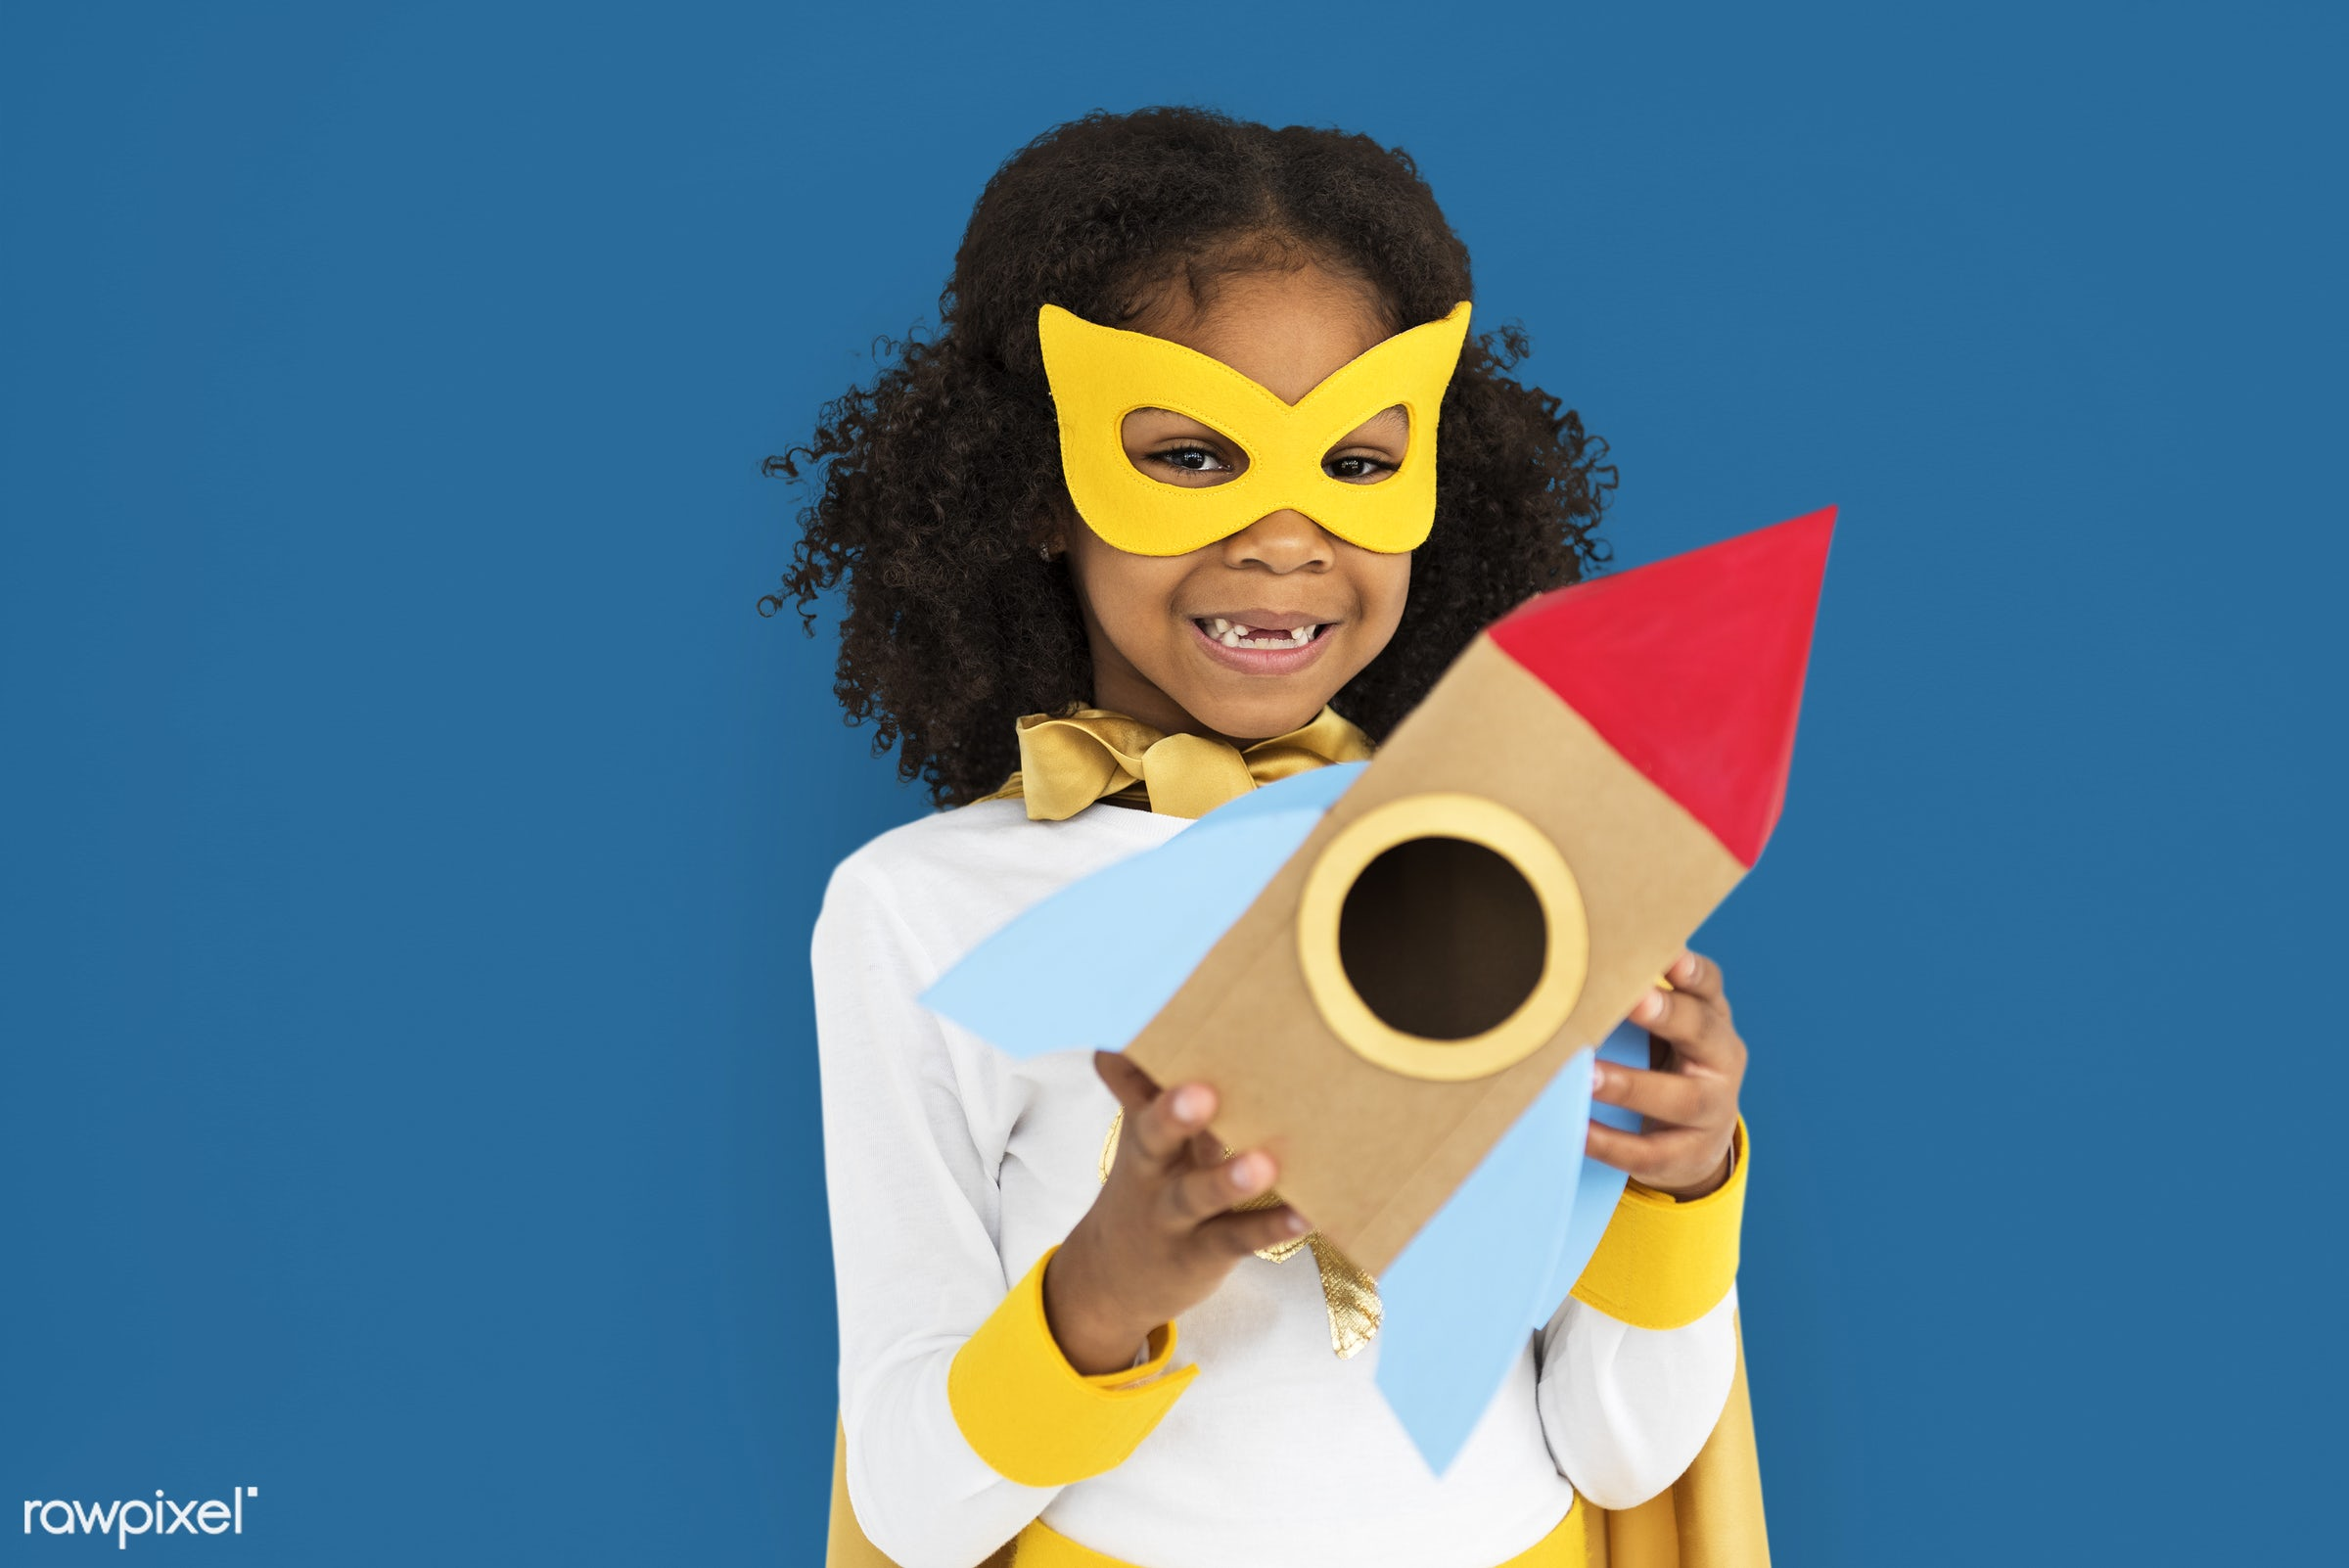 african descent, alone, black, cheerful, costume, isolated, kid, one, studio, superhero, telephone, young, youth